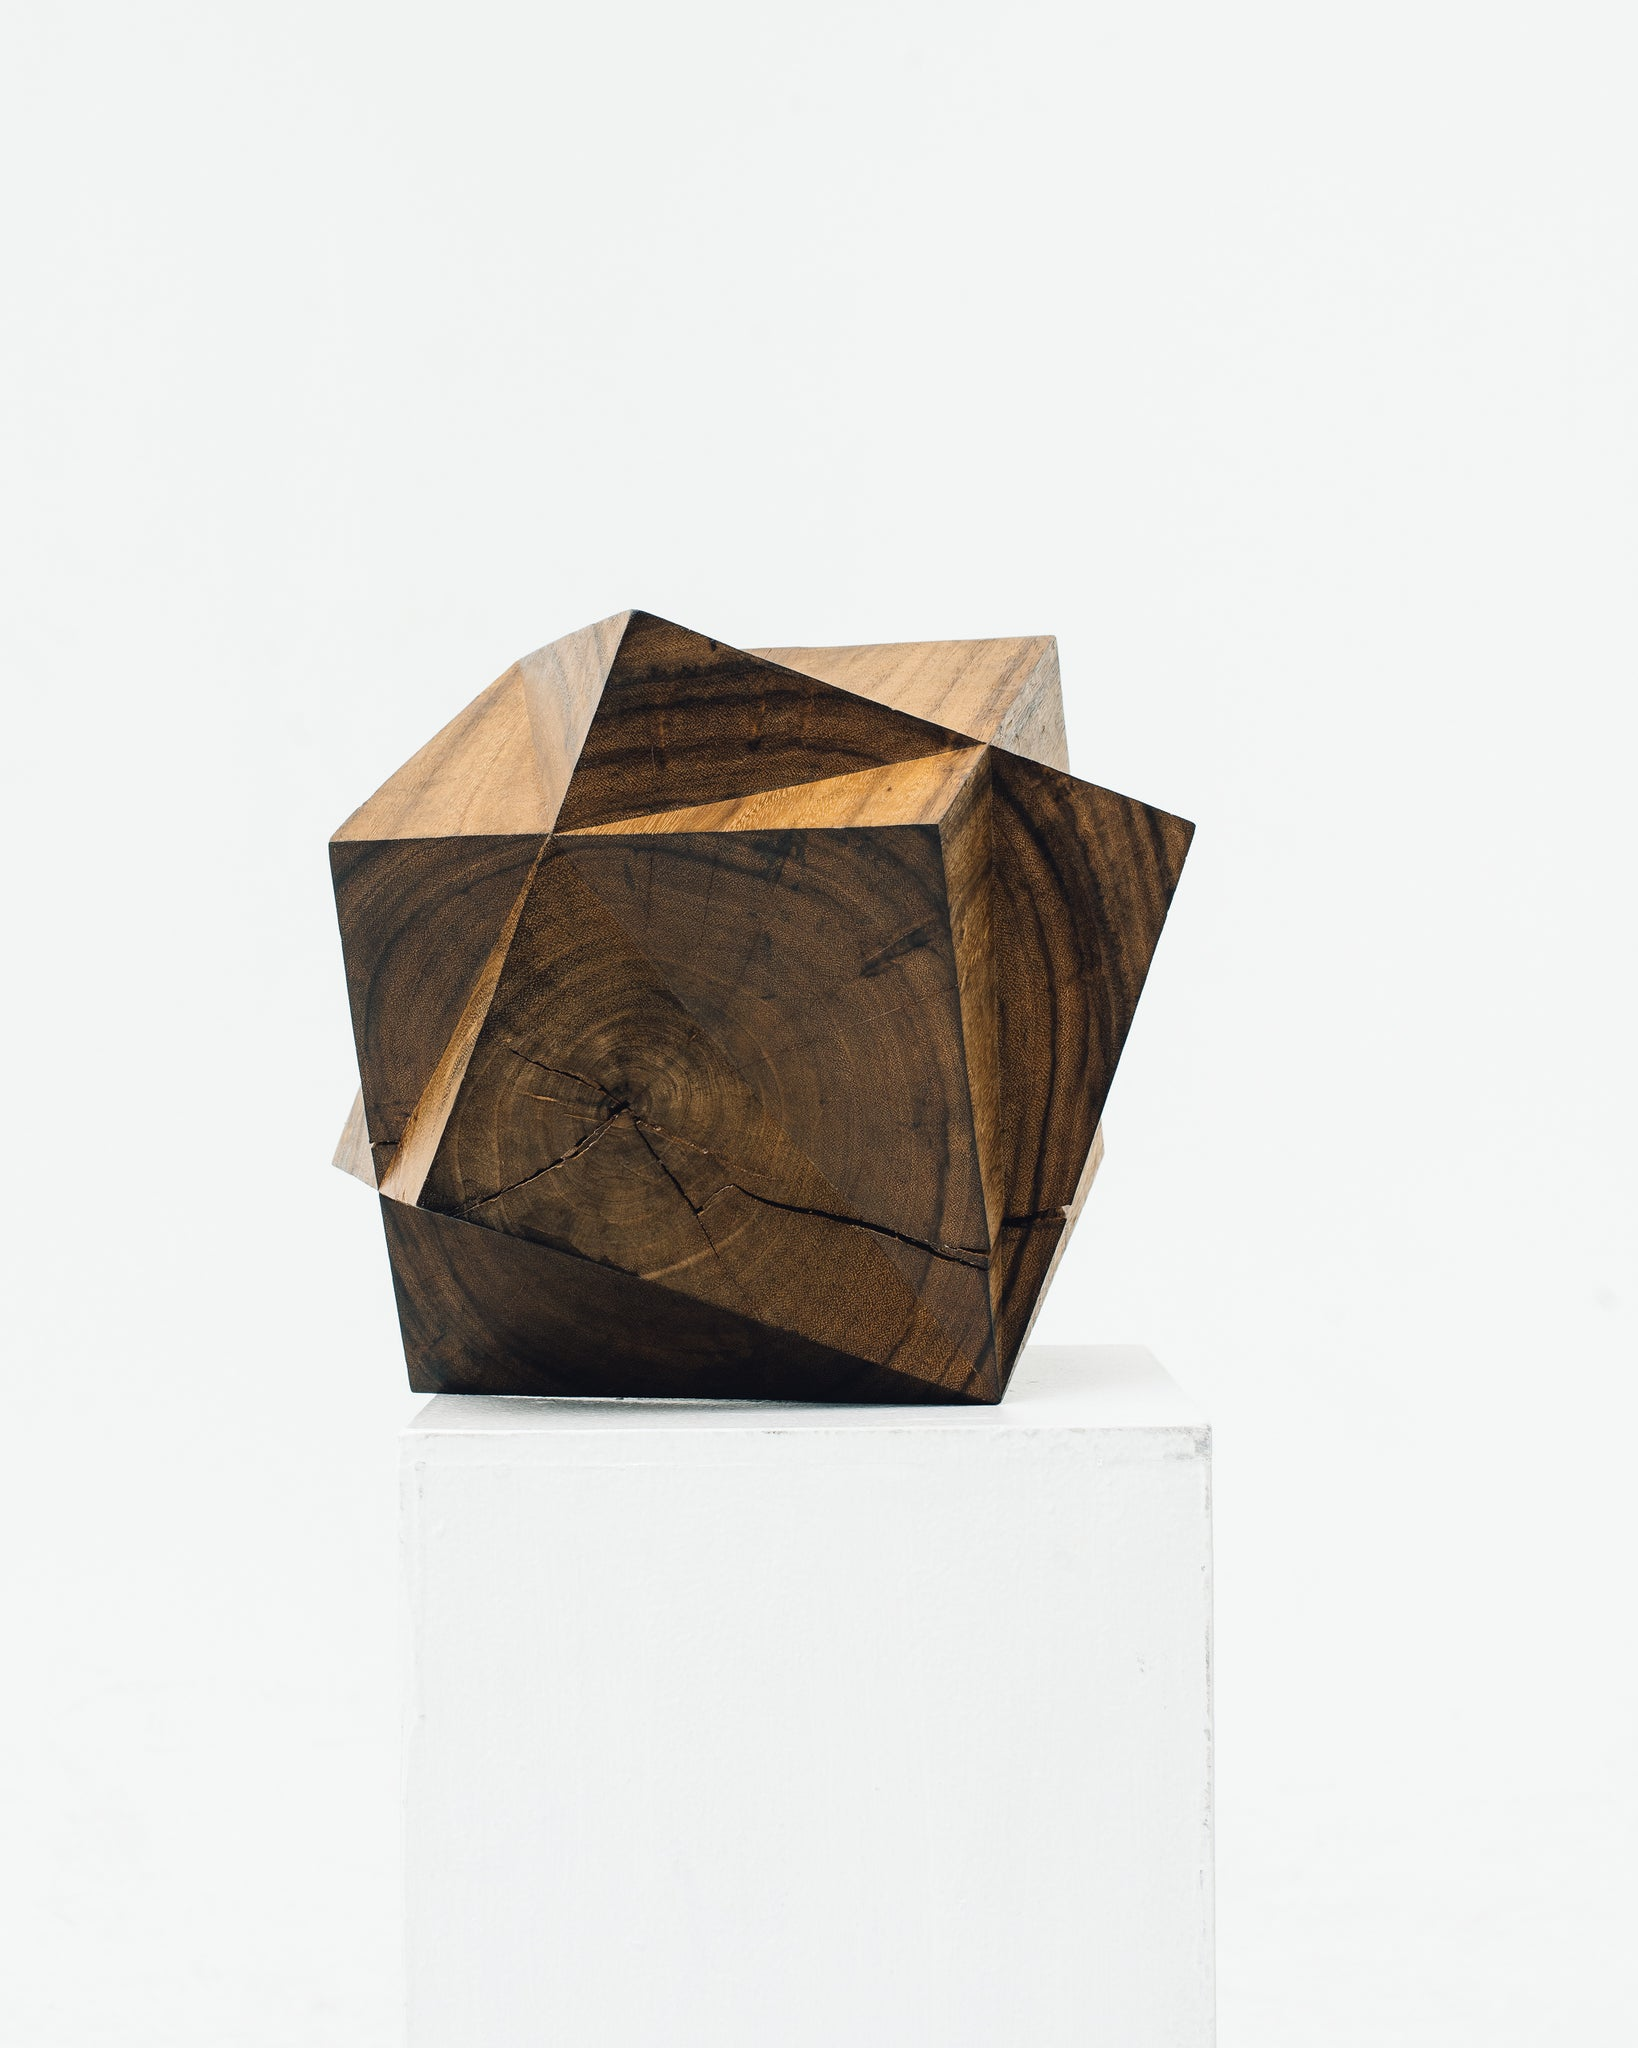 Aleph Geddis Wood Sculpture AG-1019